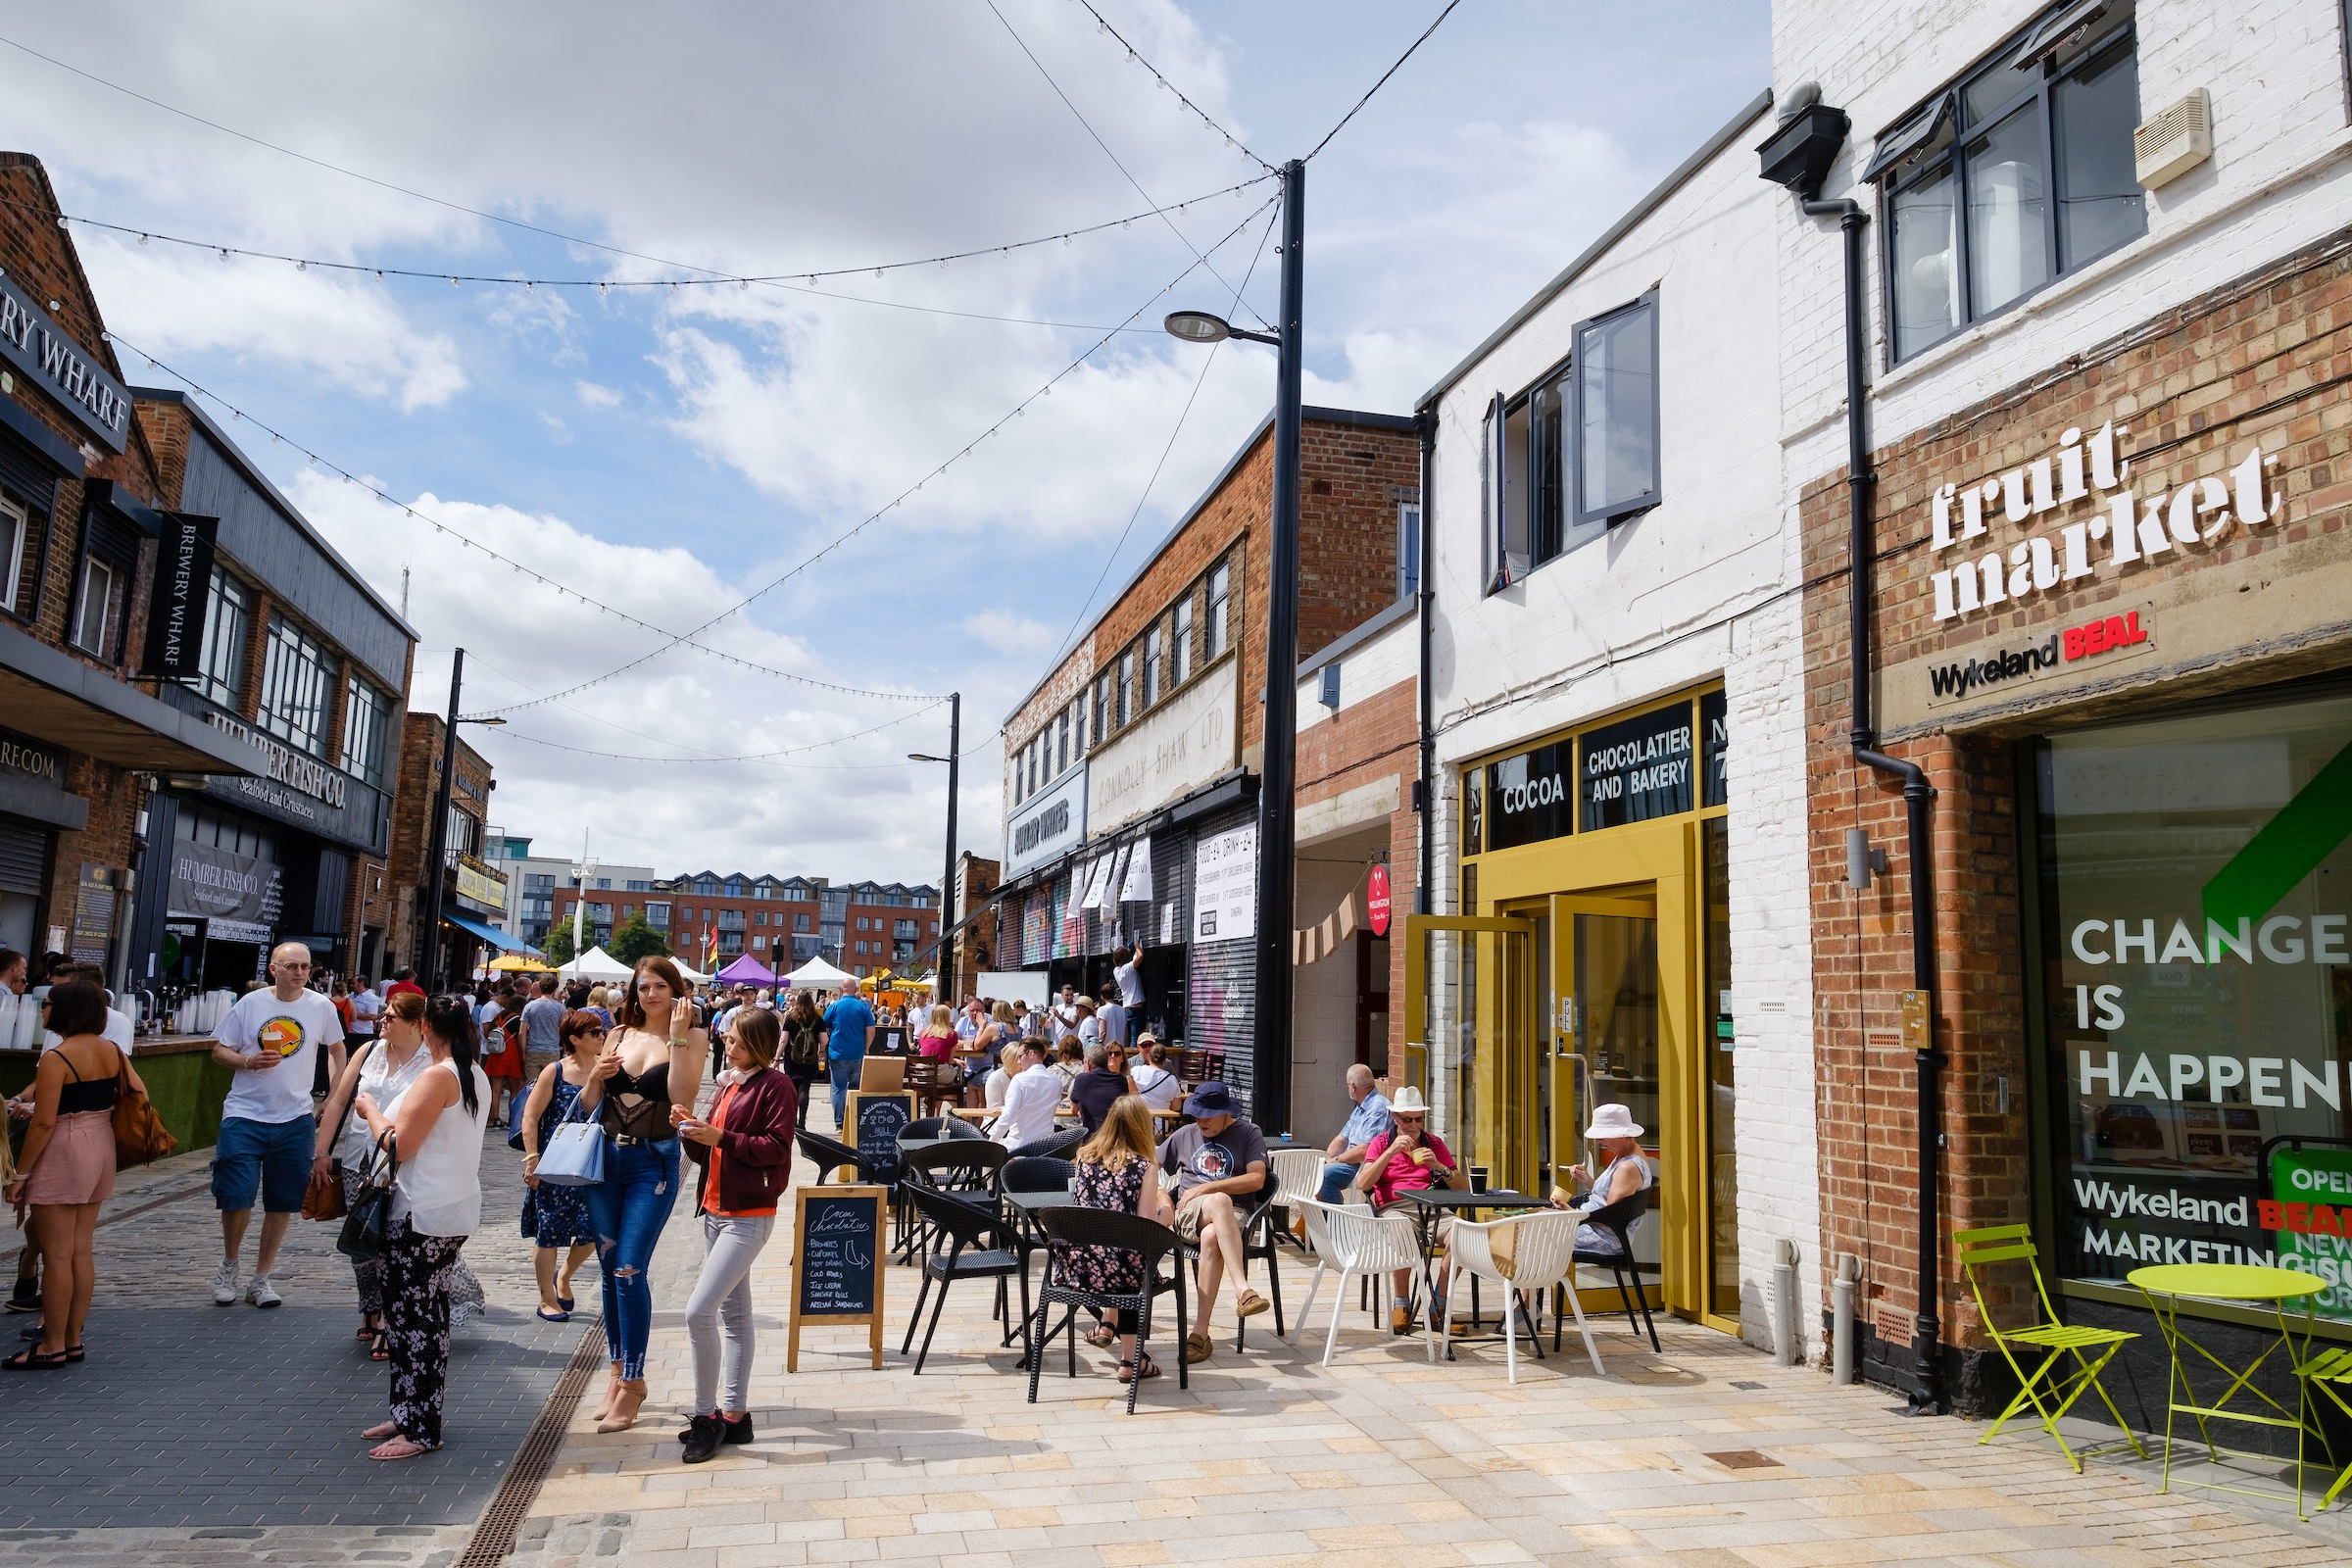 All of the Fruit Market will be a hive of activity at this year's Humber Street Sesh, with traders supporting the drive to make the festival more eco-friendly.